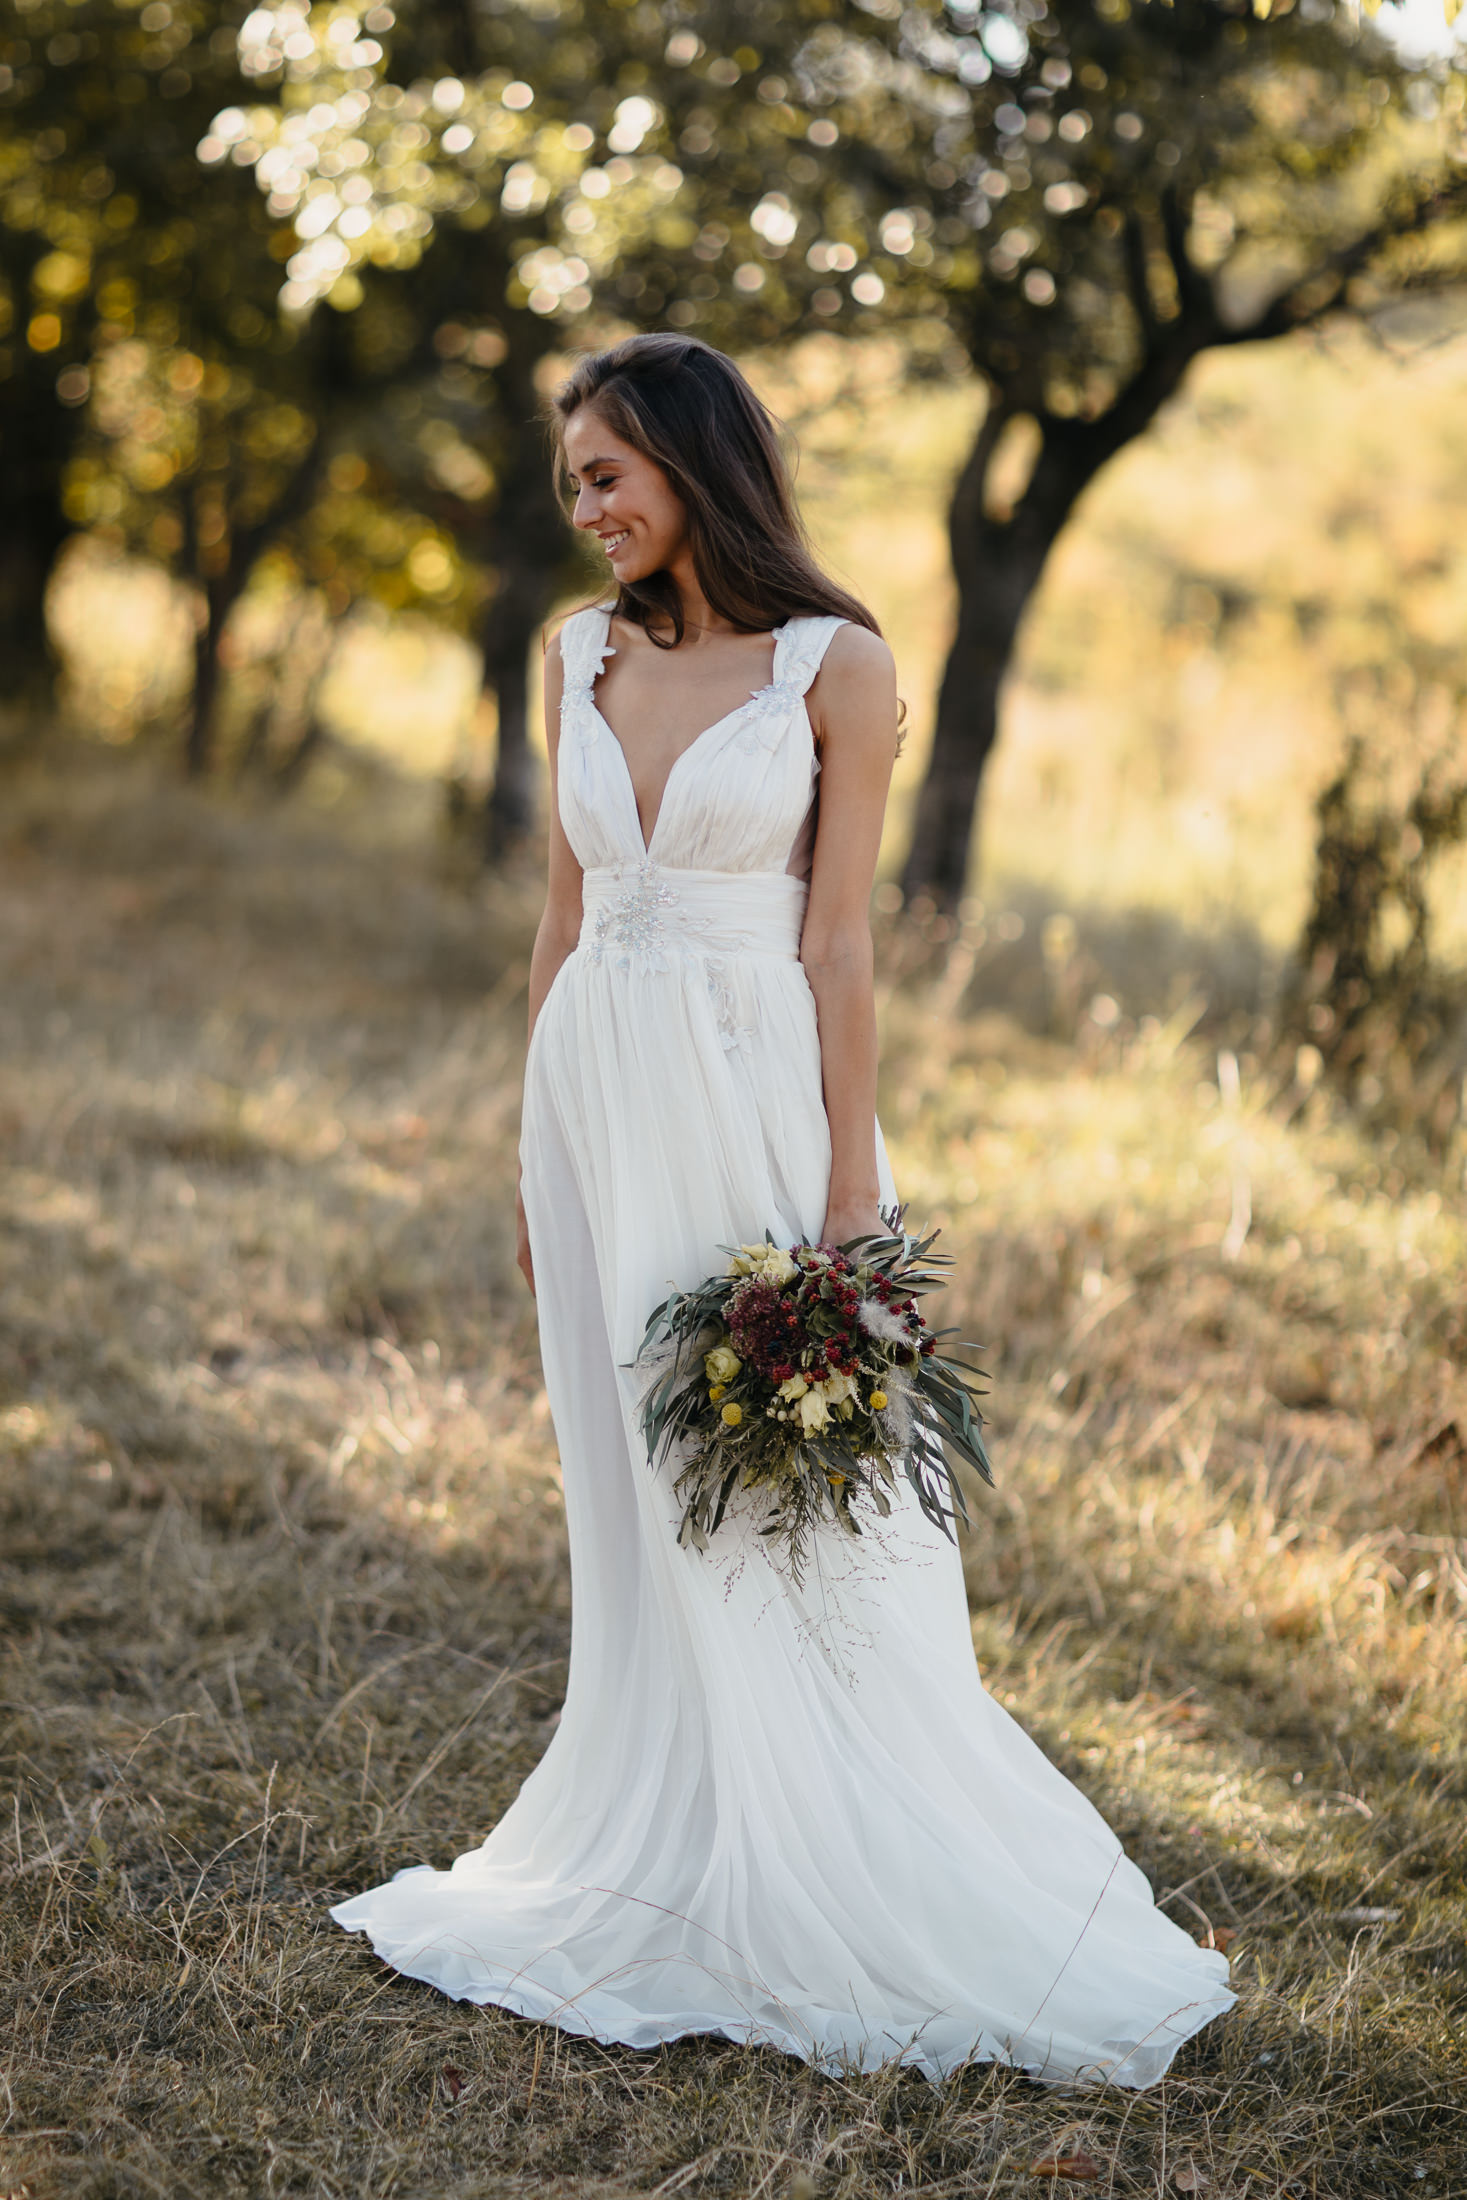 White Deer Wedding Dress Boho Session